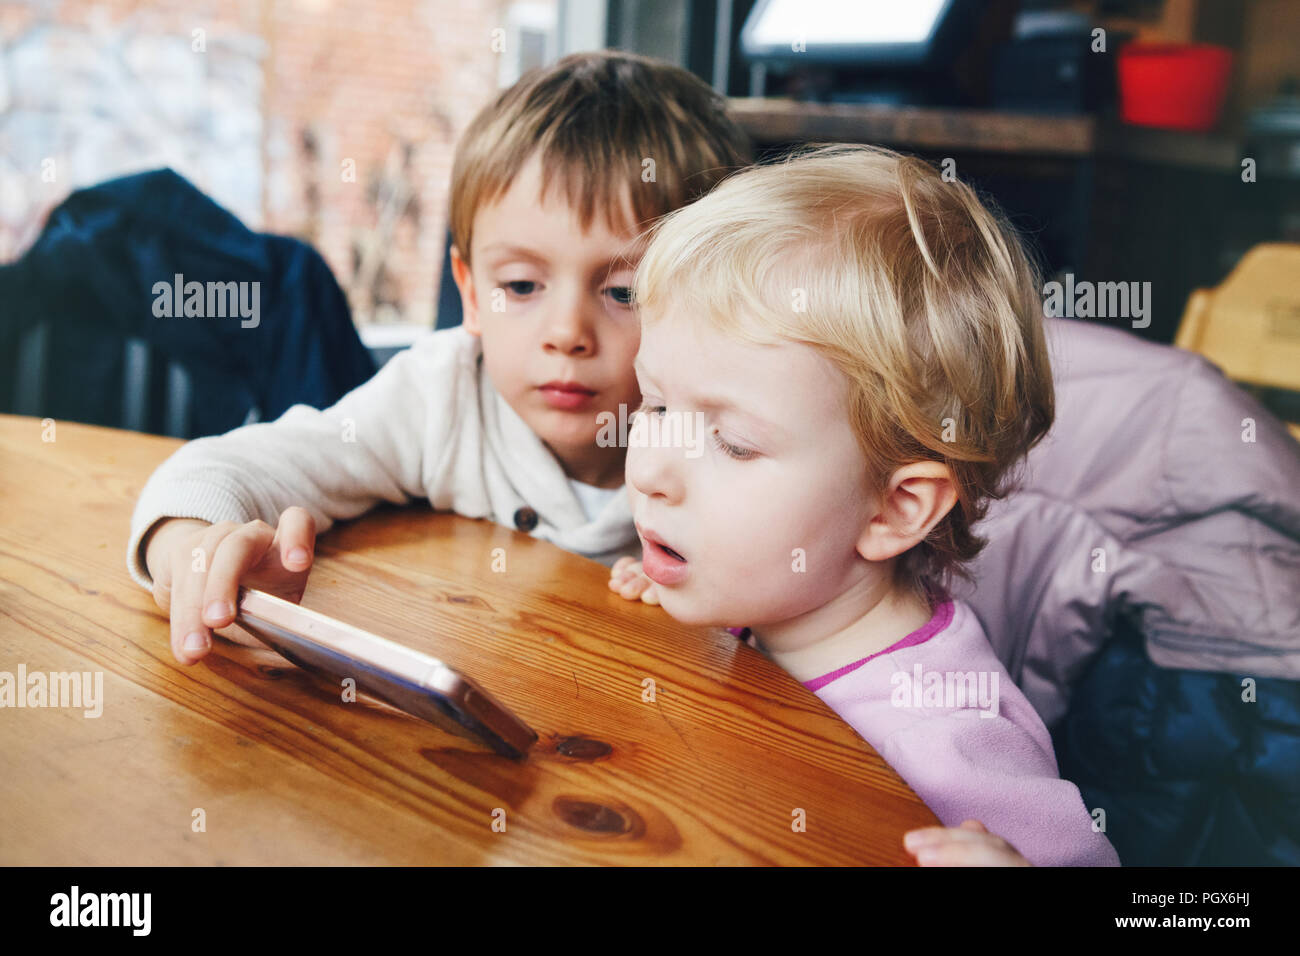 Portrait of two children toddlers boy and girl playing cell phone tablet games, watching cartoons movie, sitting at table in restaurant, real lifestyl - Stock Image